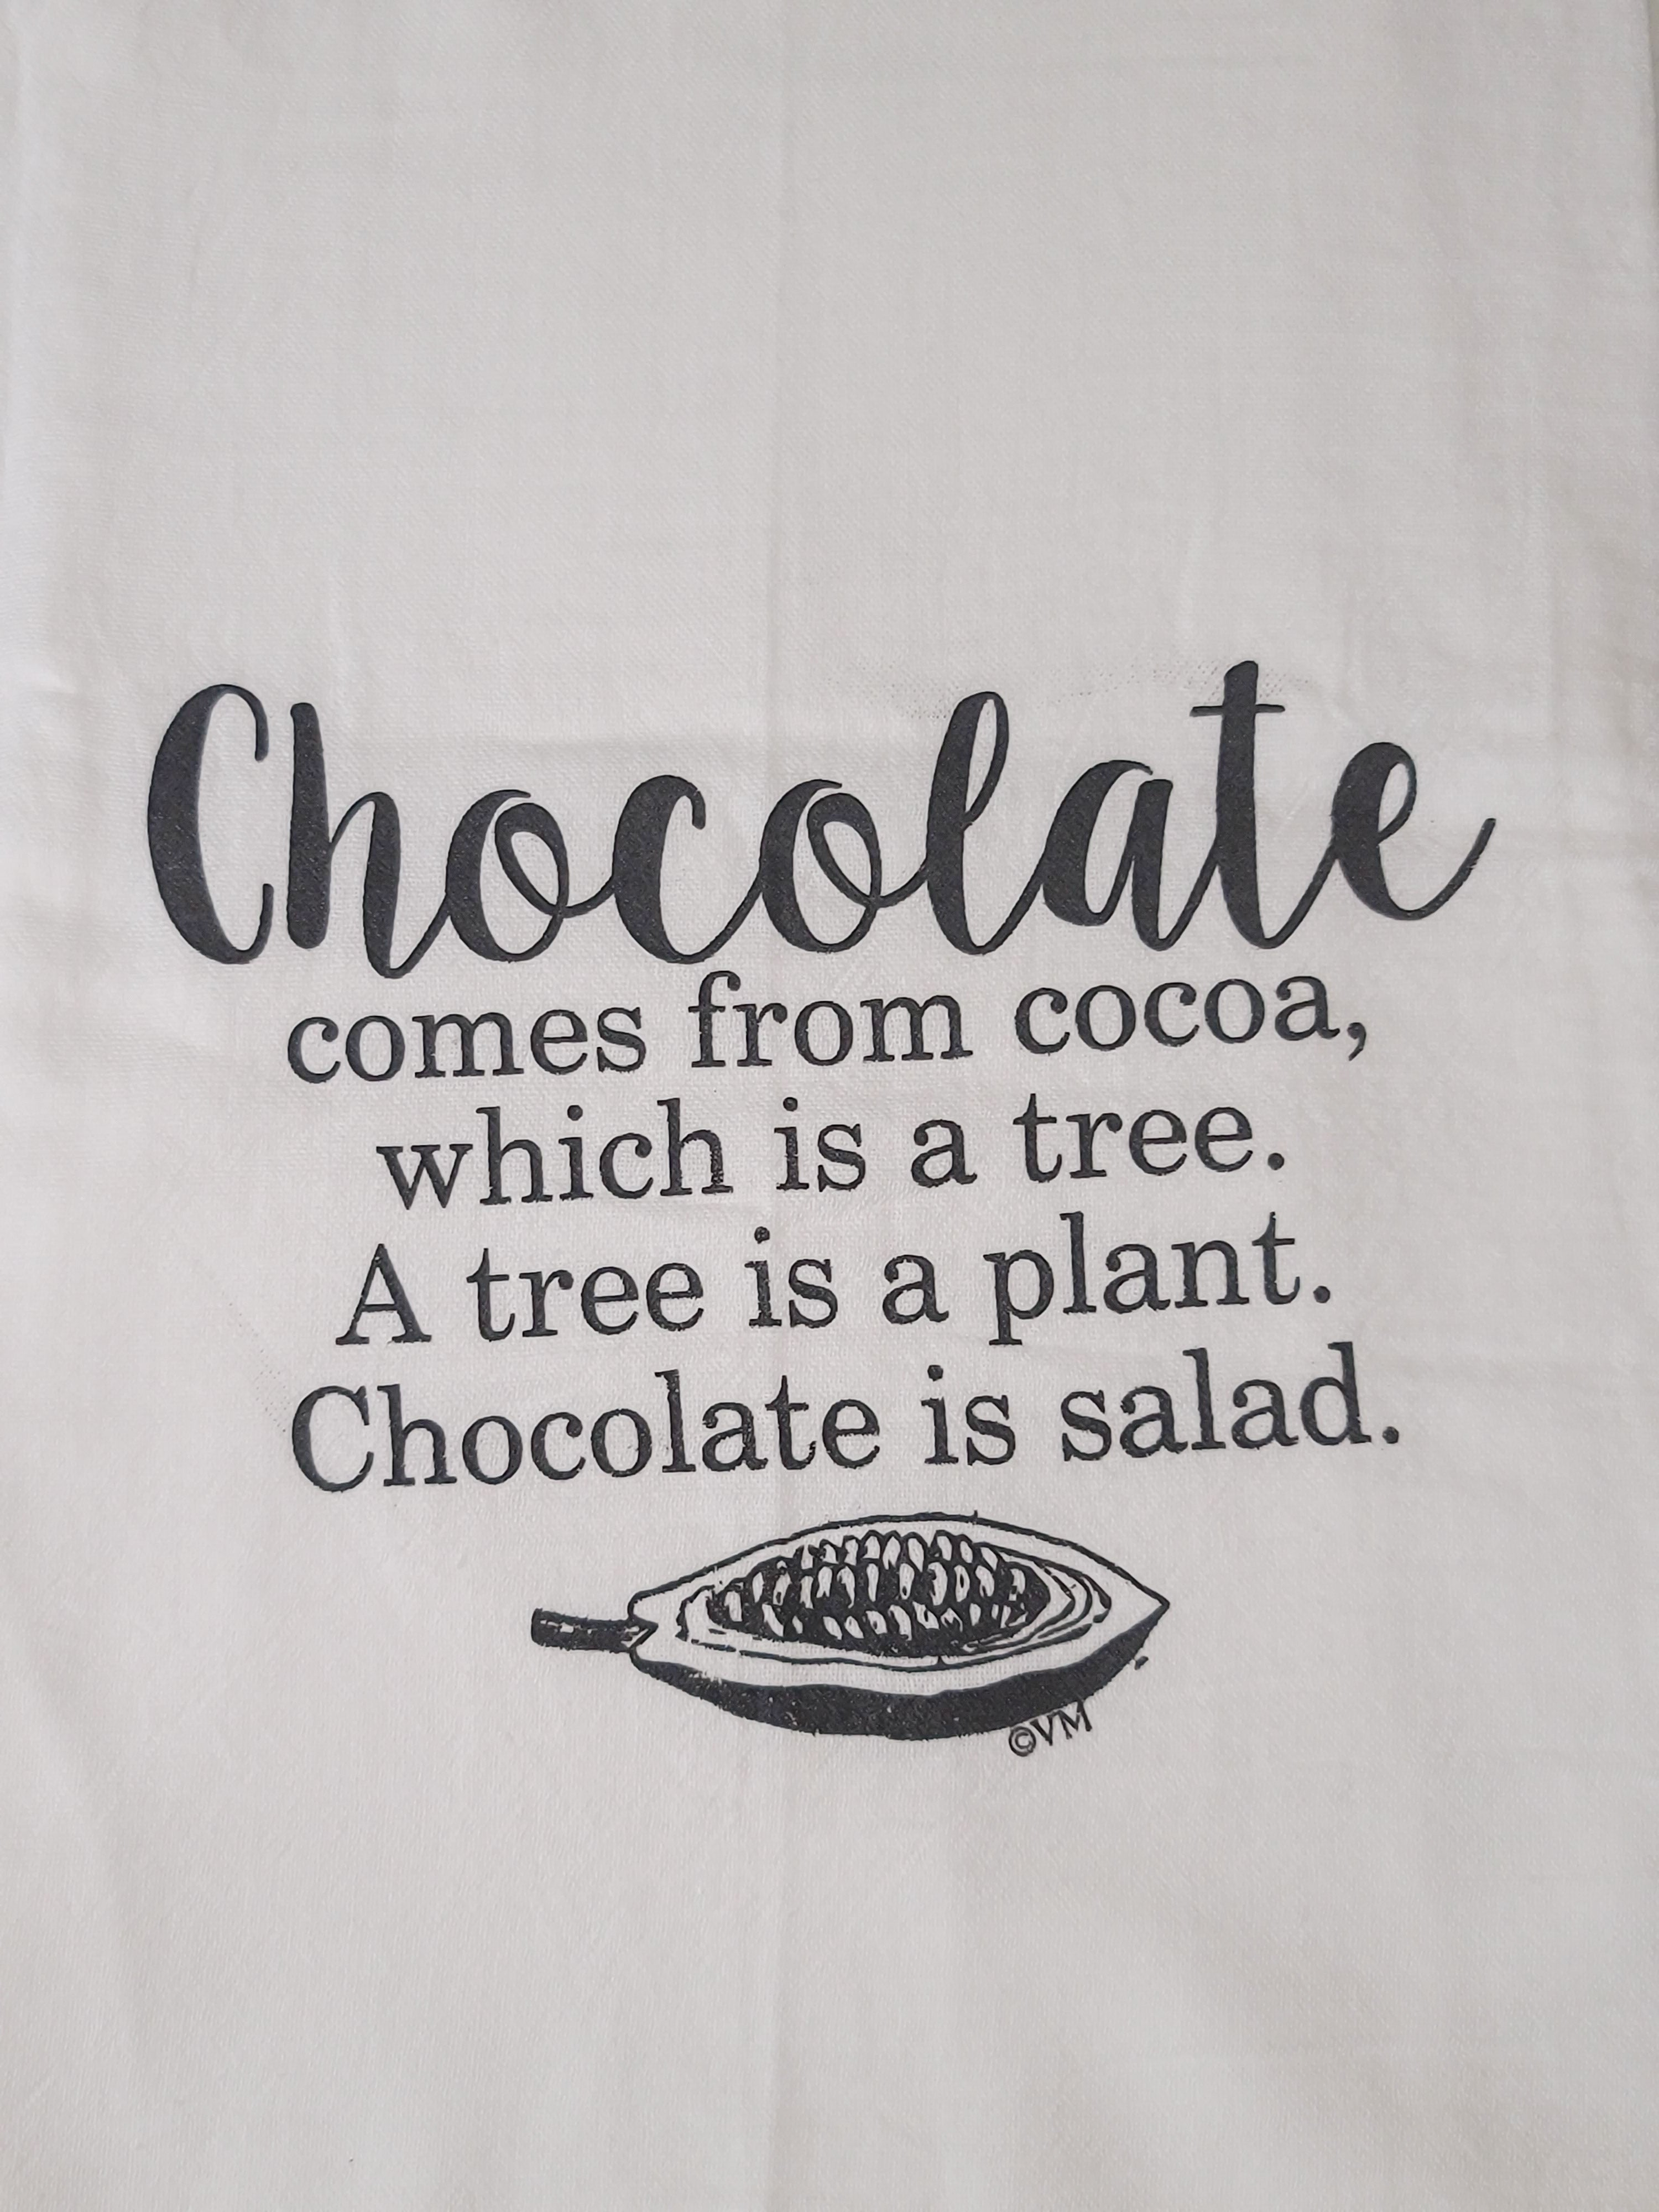 Dish Towel Chocolate is a Salad